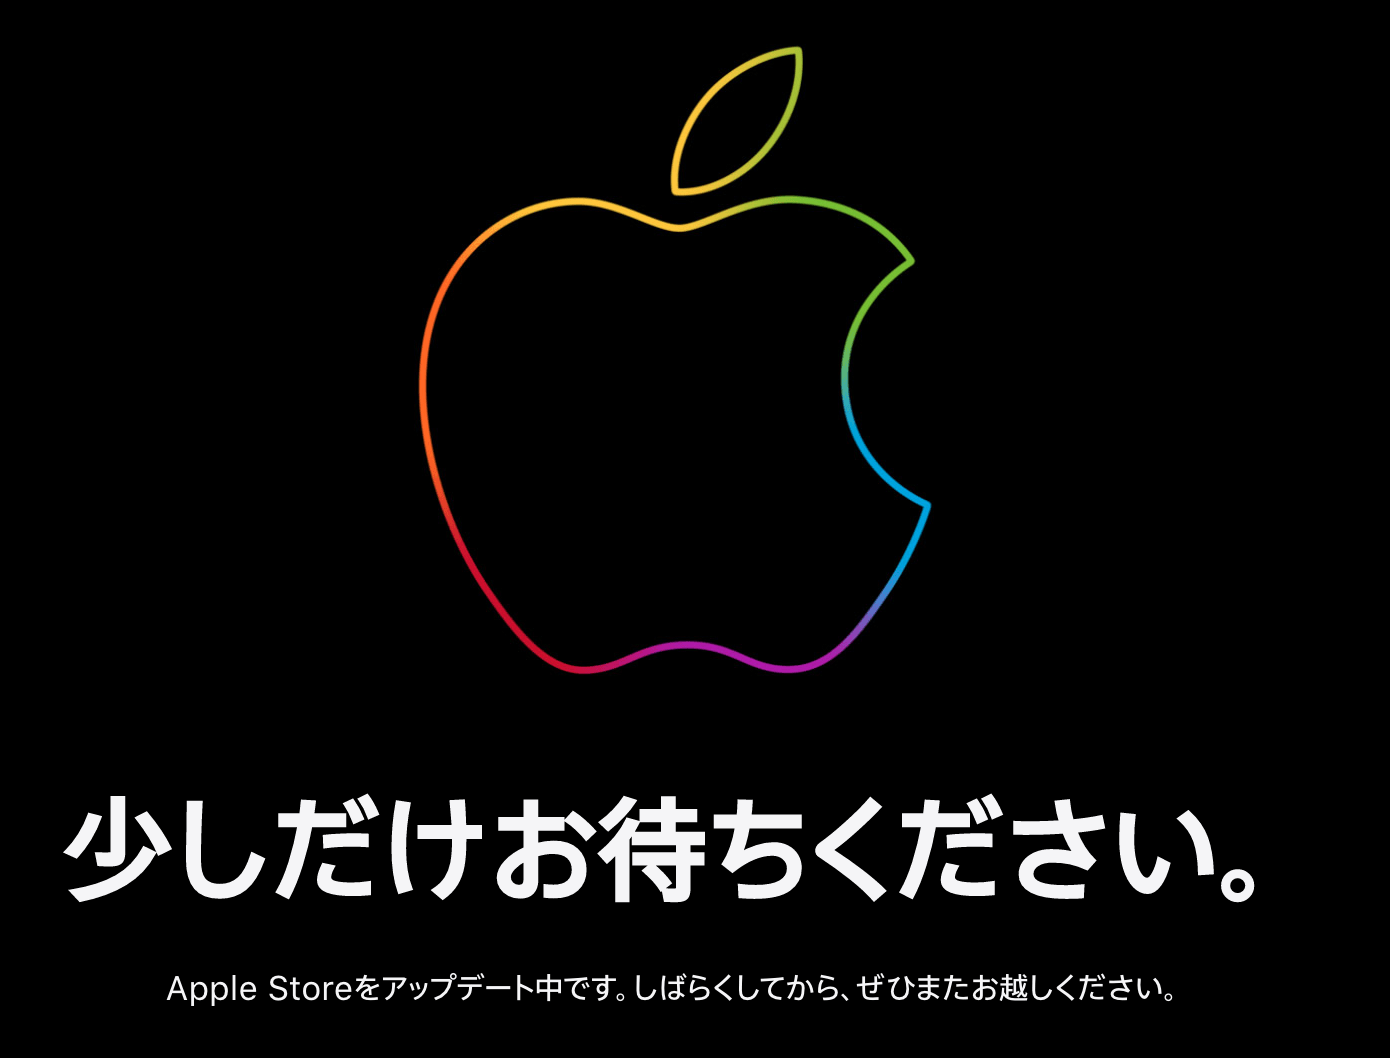 Applestore event